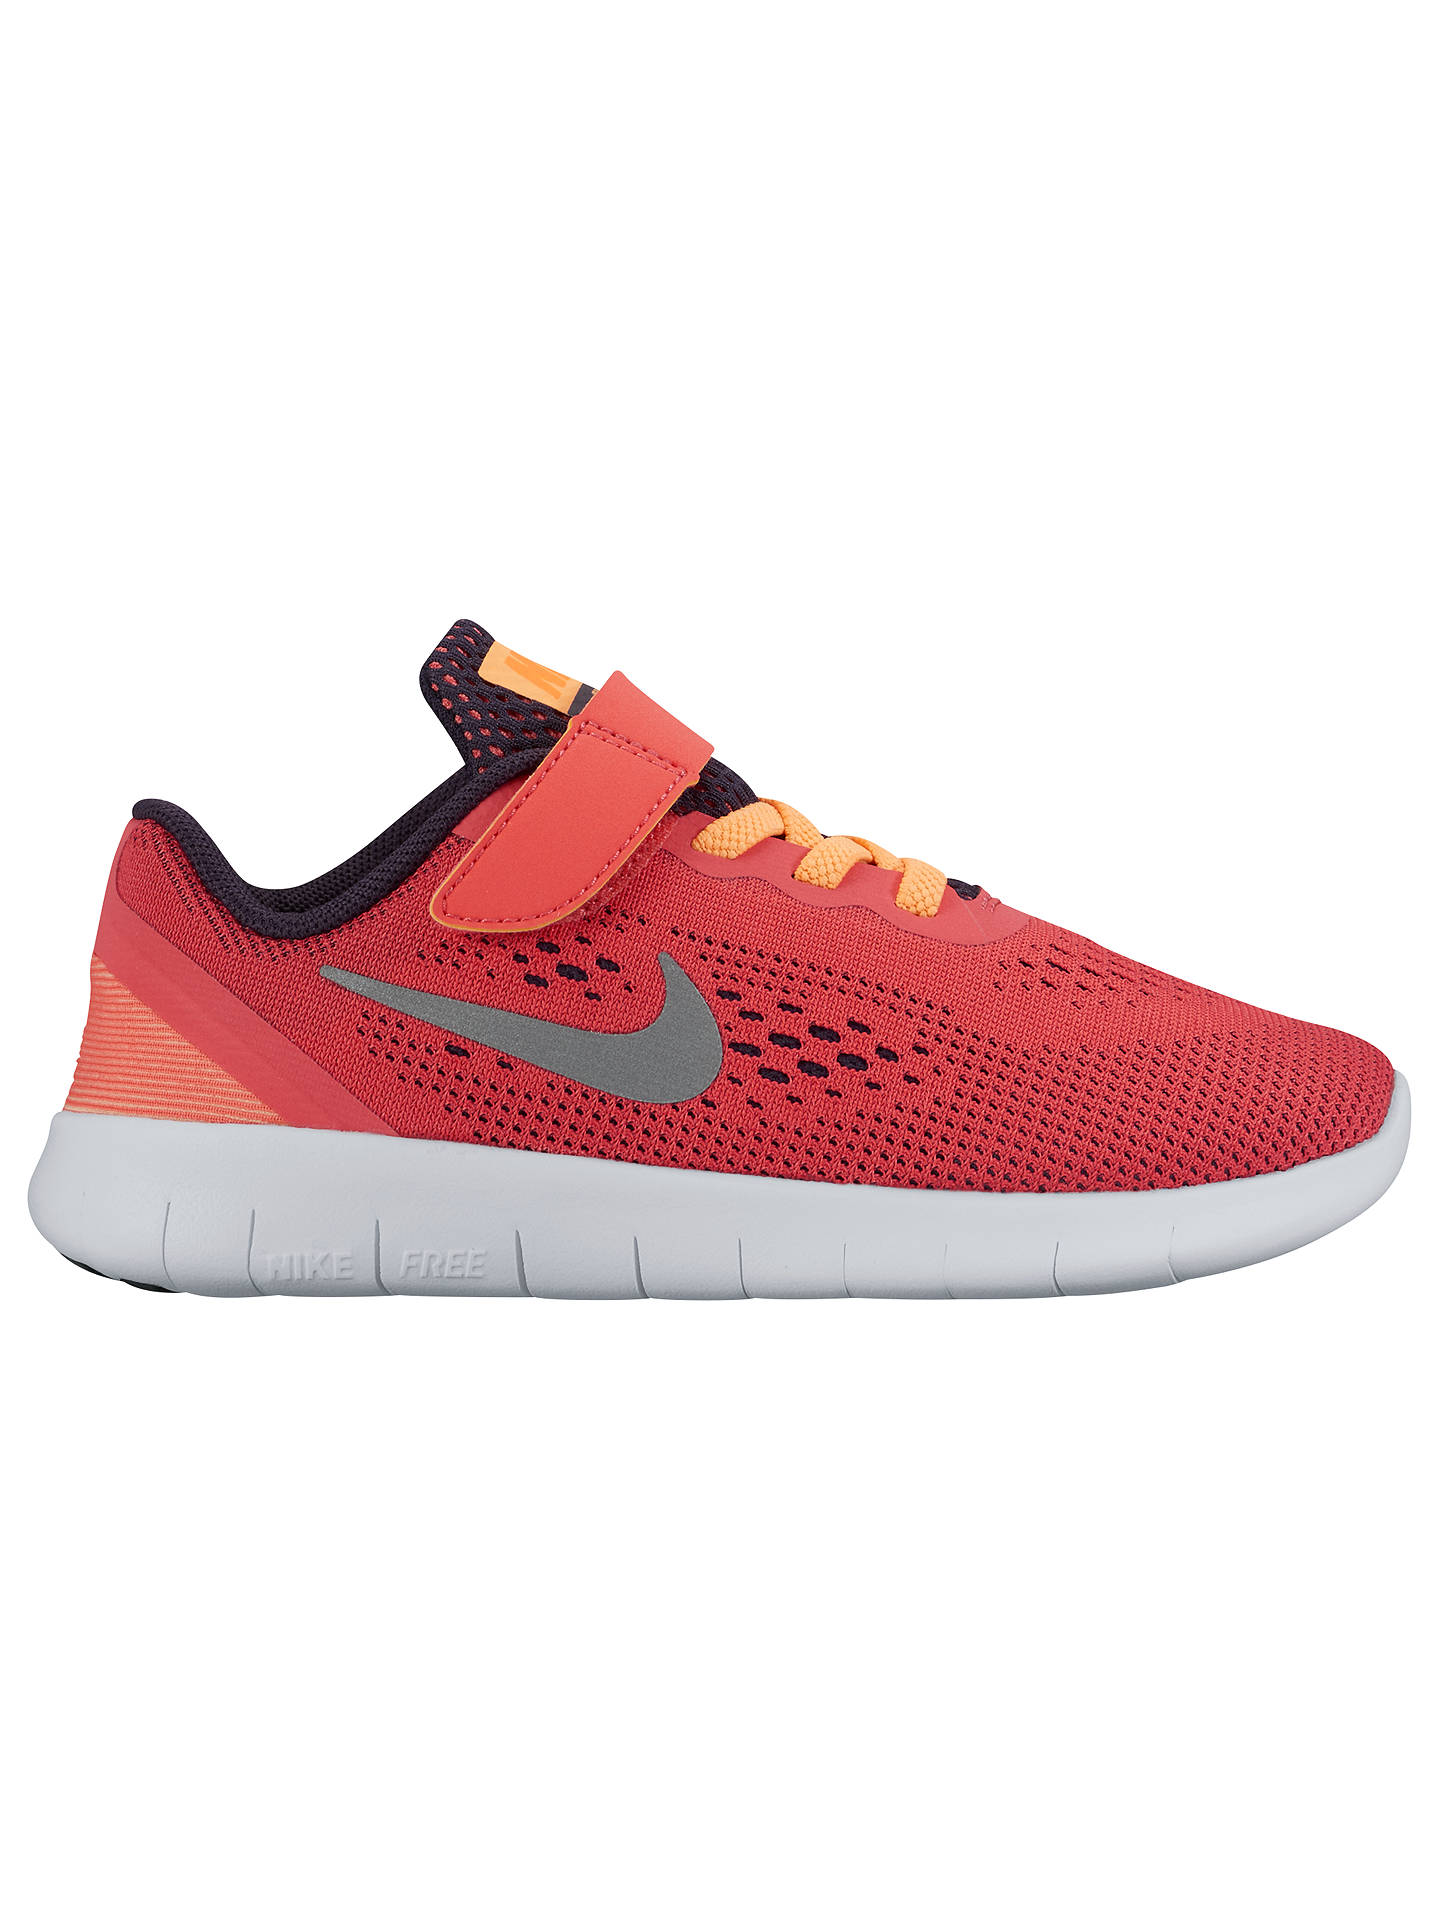 13299dacc55f4 ... discount code for buynike childrens free run ps trainers coral 10 jnr  online at johnlewis.